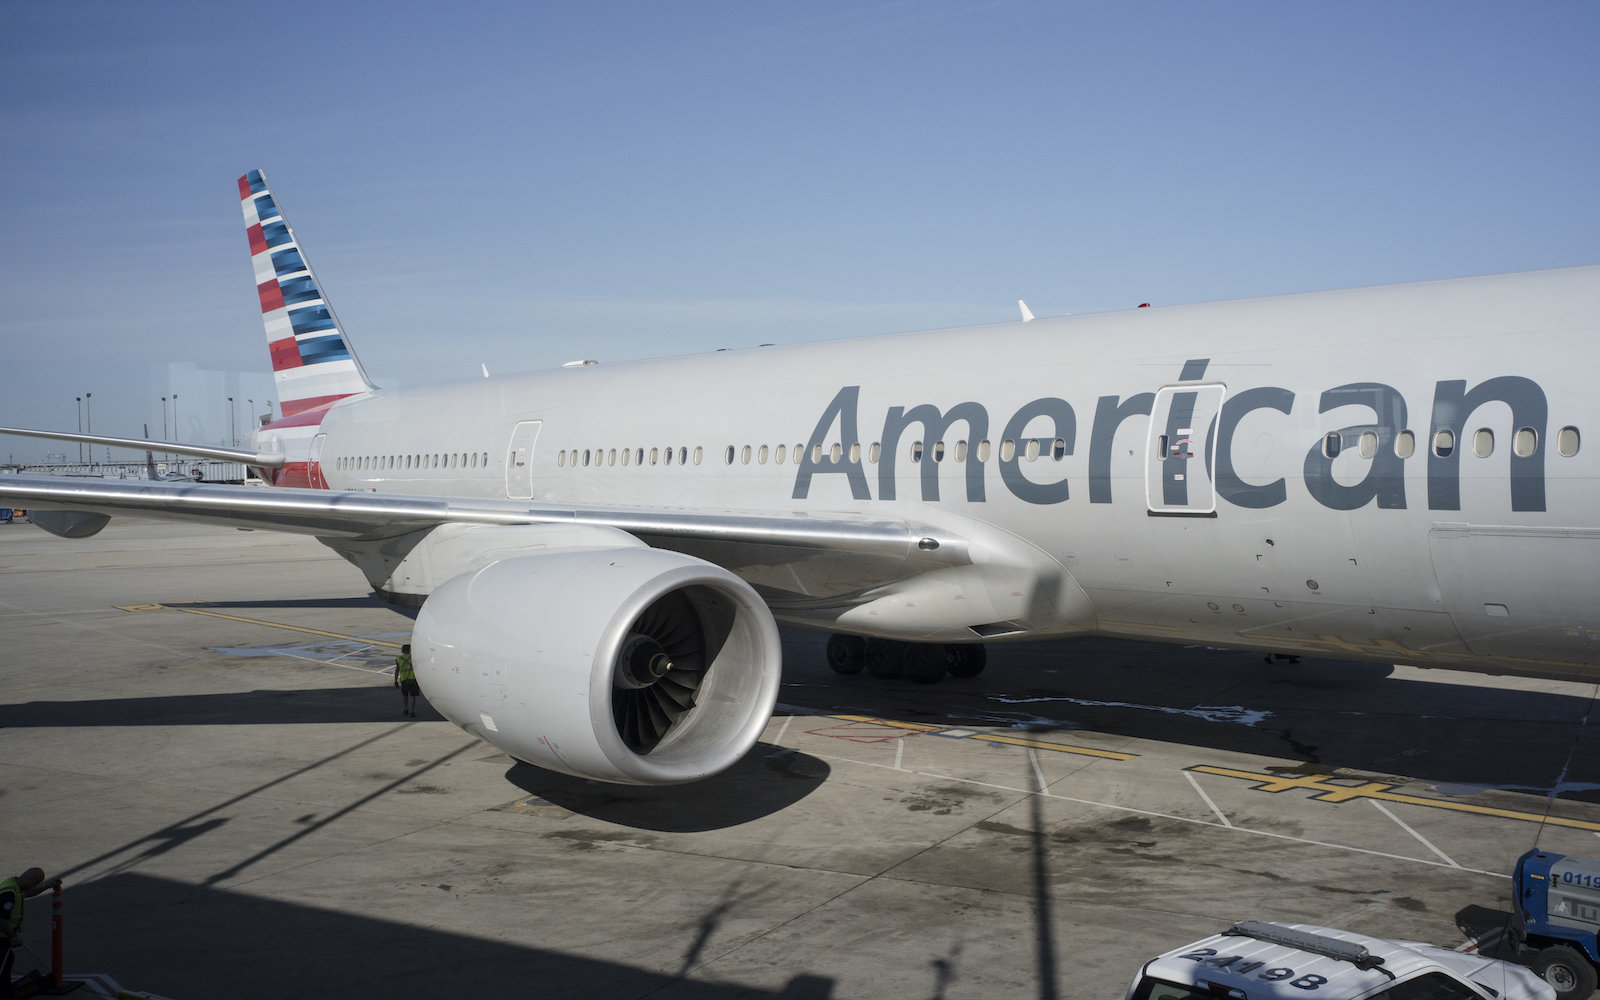 American Airlines to introduce new rules on 'smart bags'